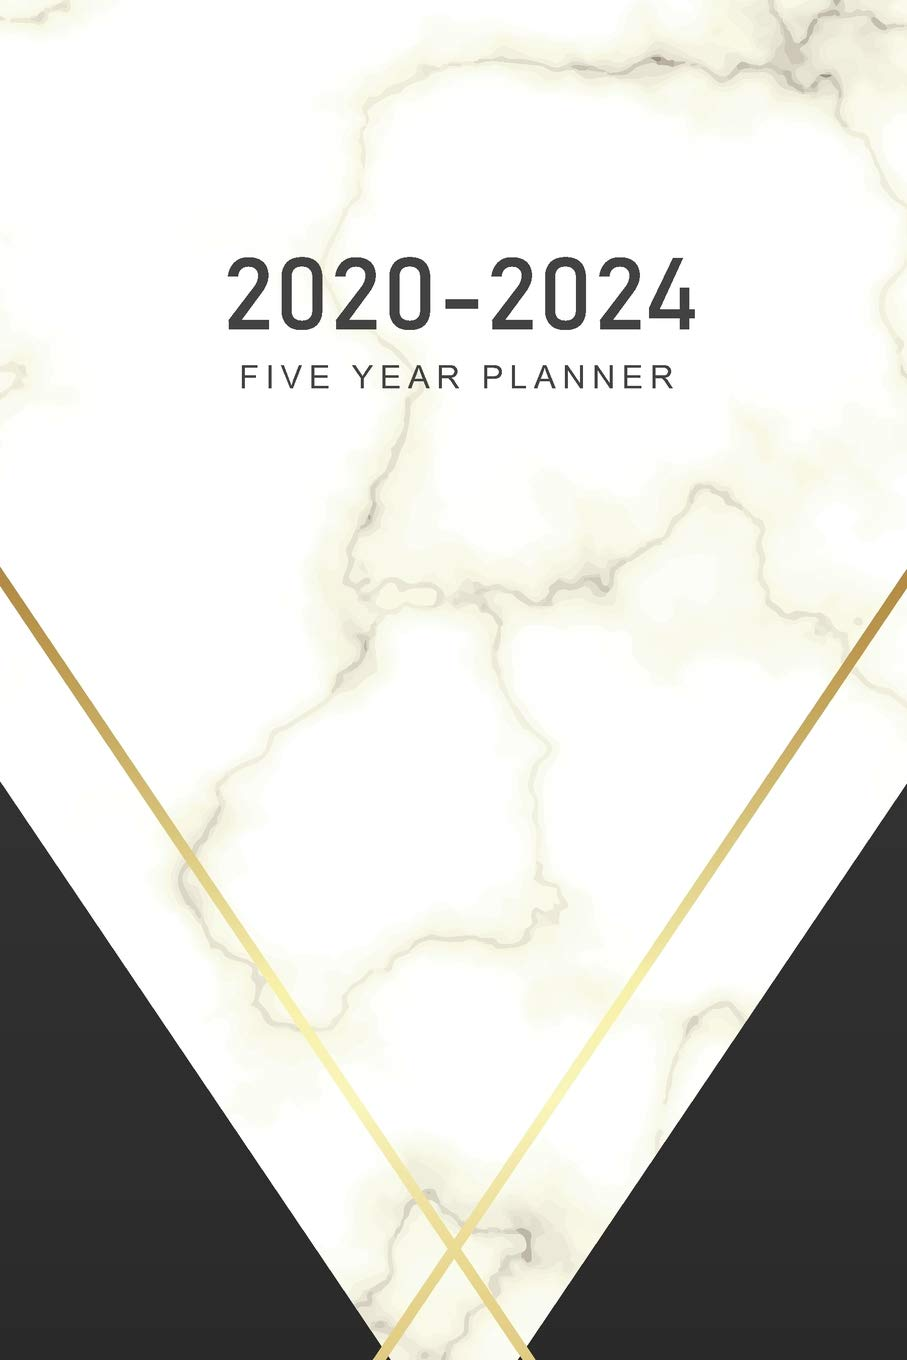 2020-2024 Five Year Planner: Marble Cover | 2020 - 2024 ...